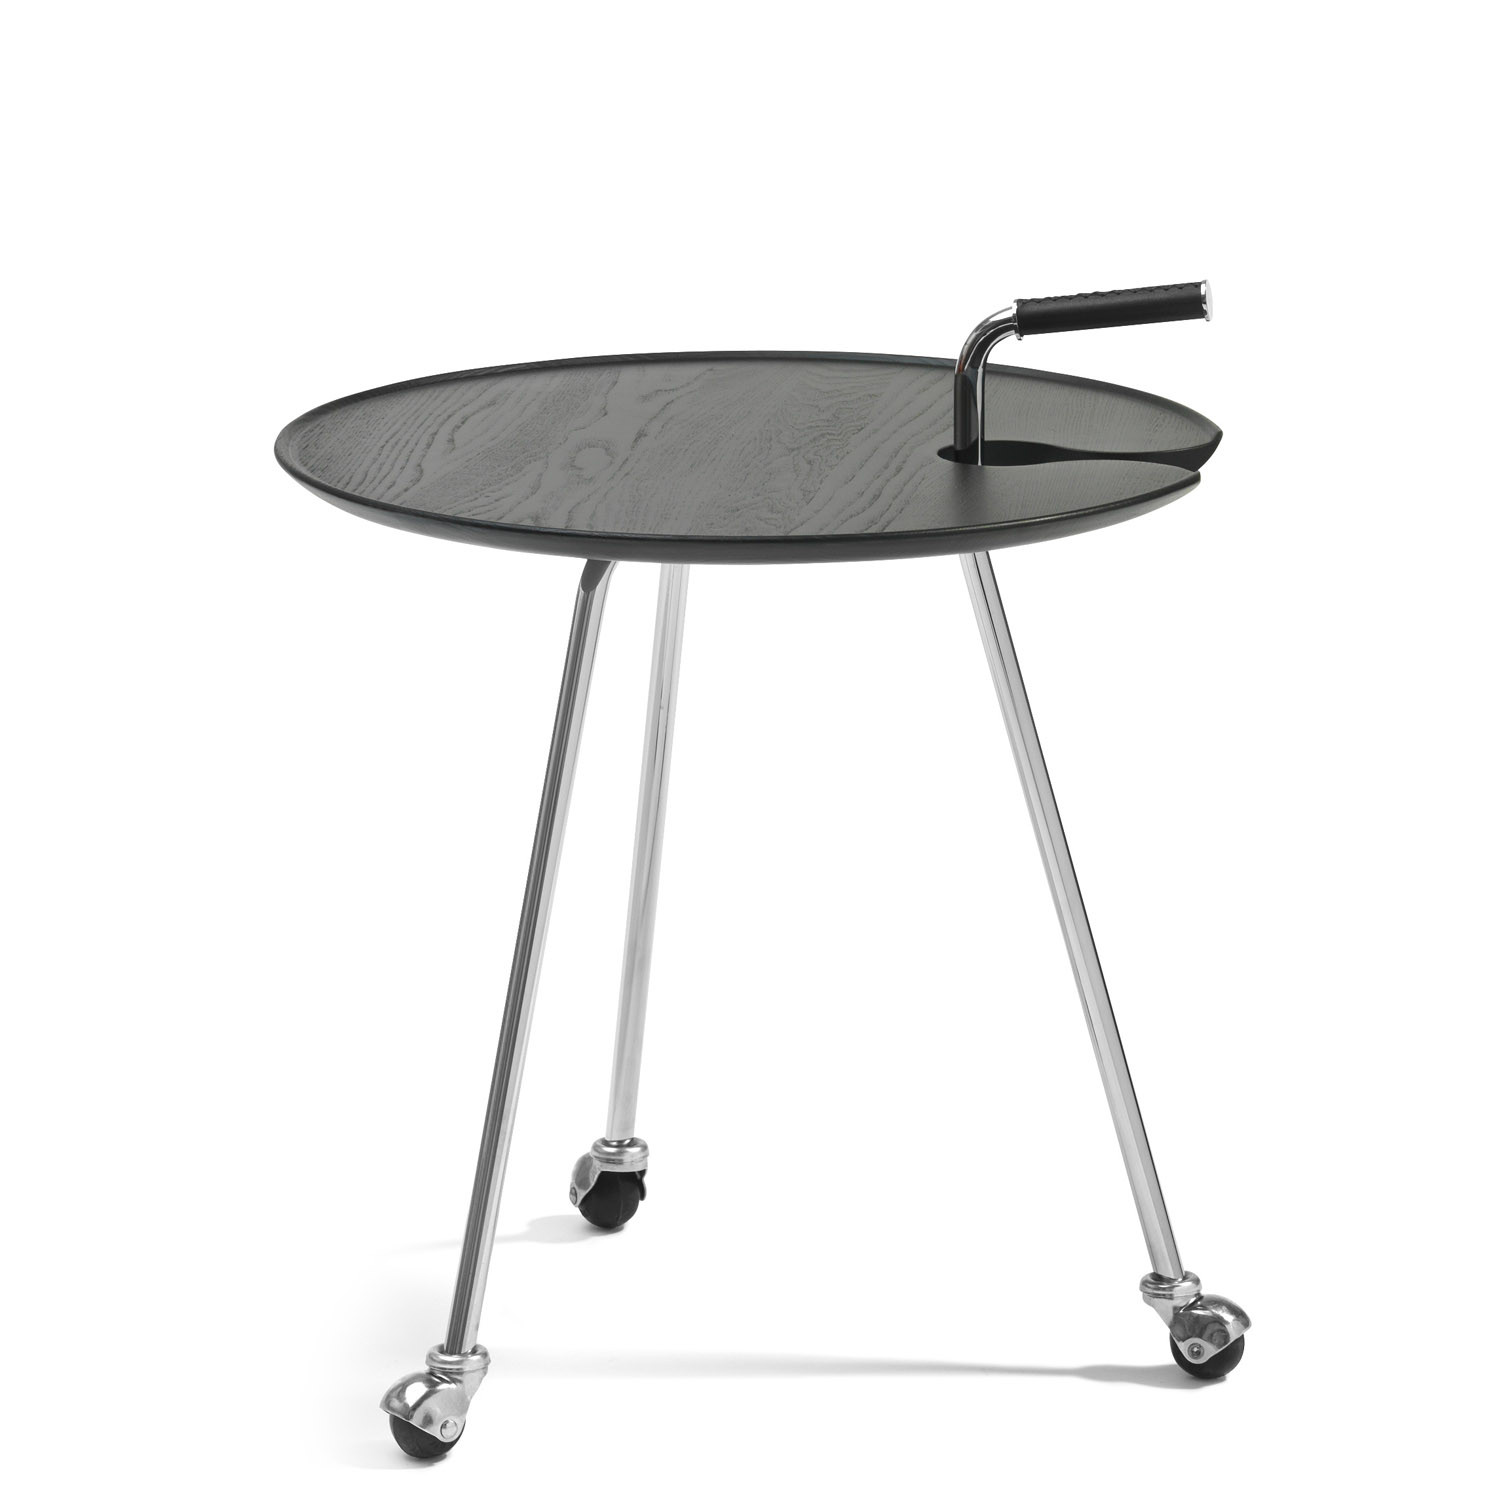 Pond L841 Table Trolley in Black